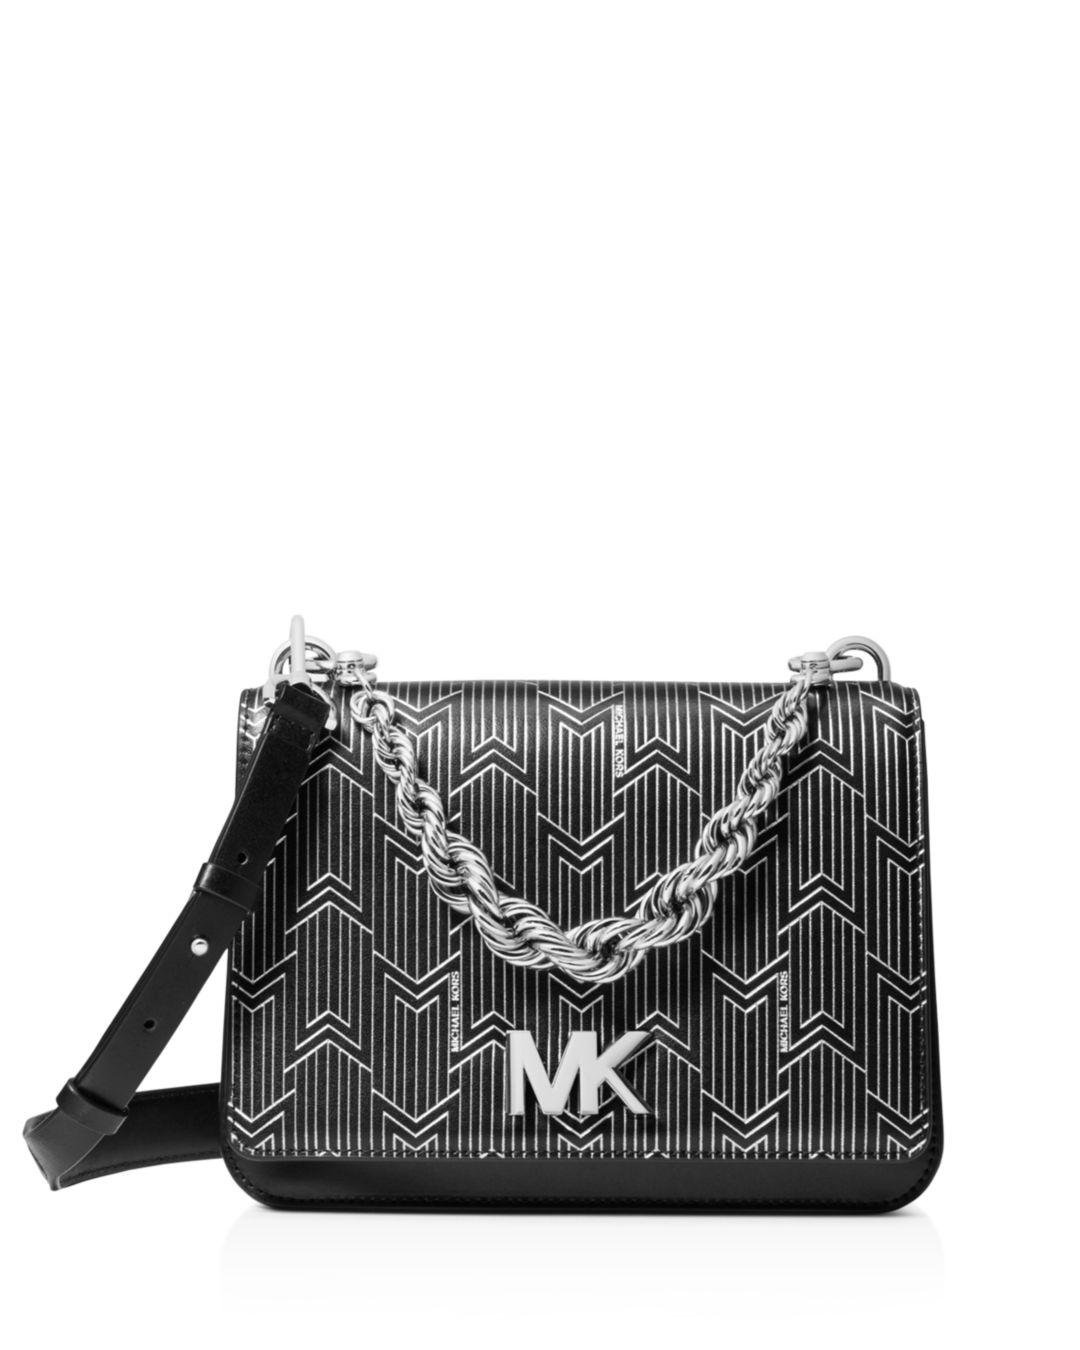 99b683c299e615 Michael Kors - Black Mott Large Metallic Deco Leather Crossbody Bag - Lyst.  View fullscreen